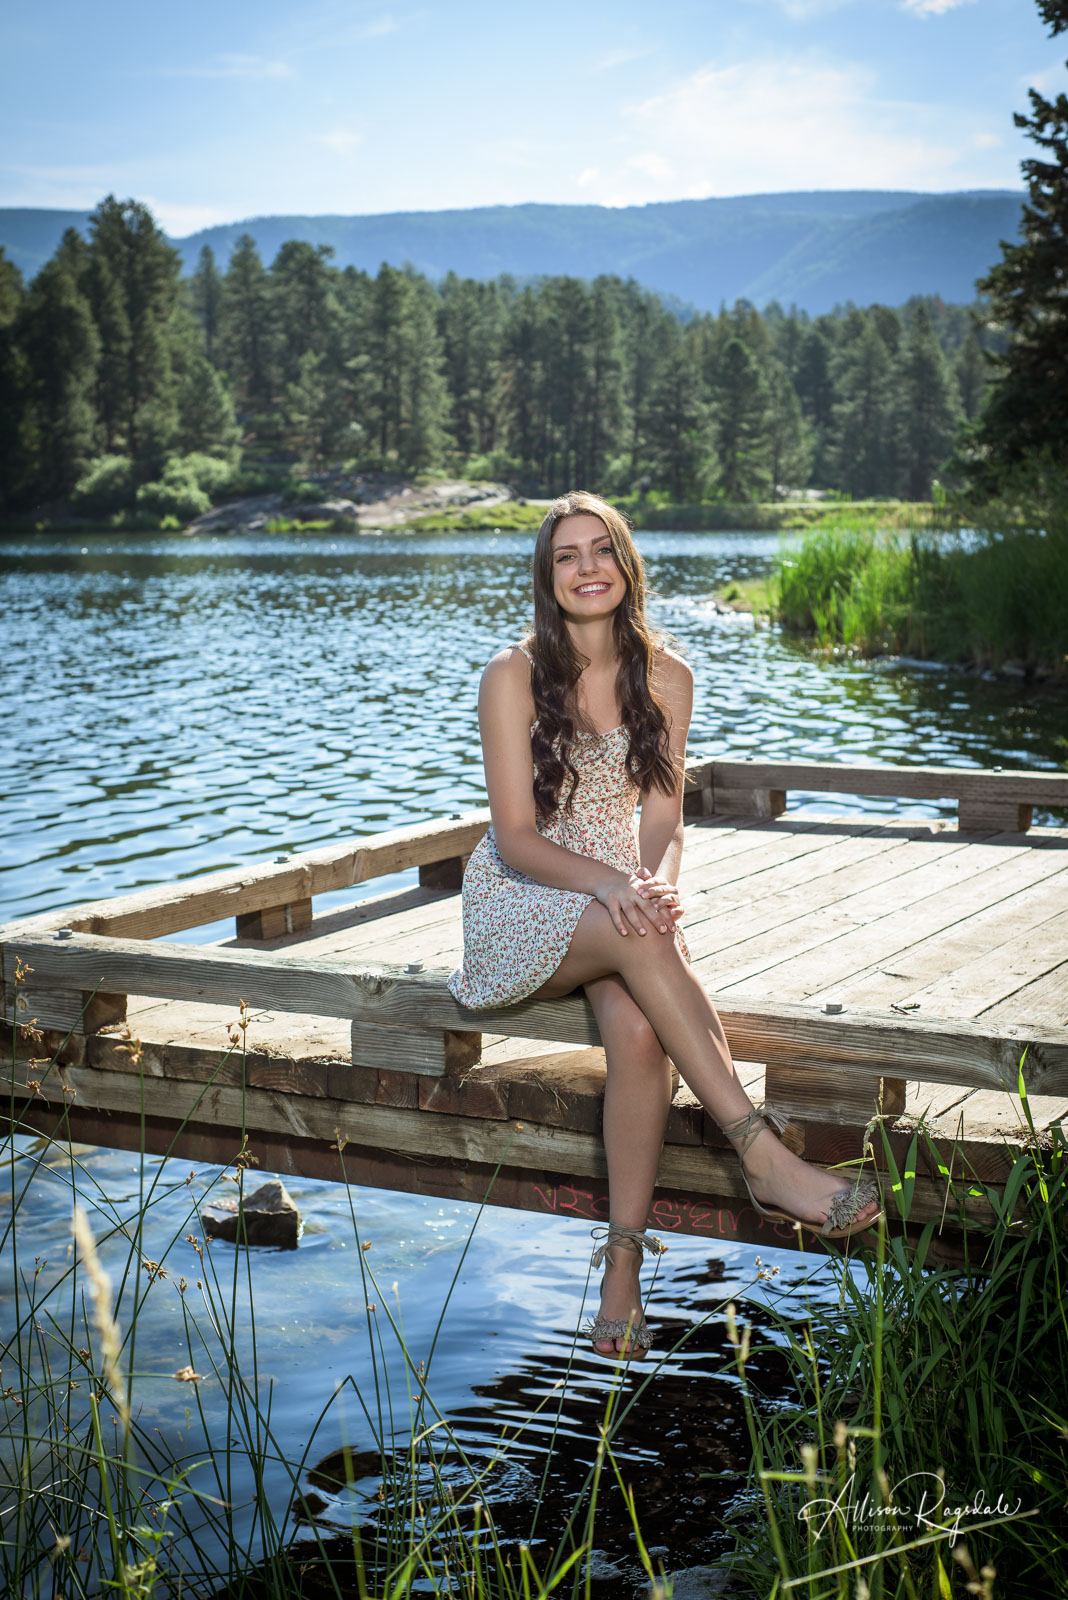 professional portraits by Allison Ragsdale Photography in Durango Colorado